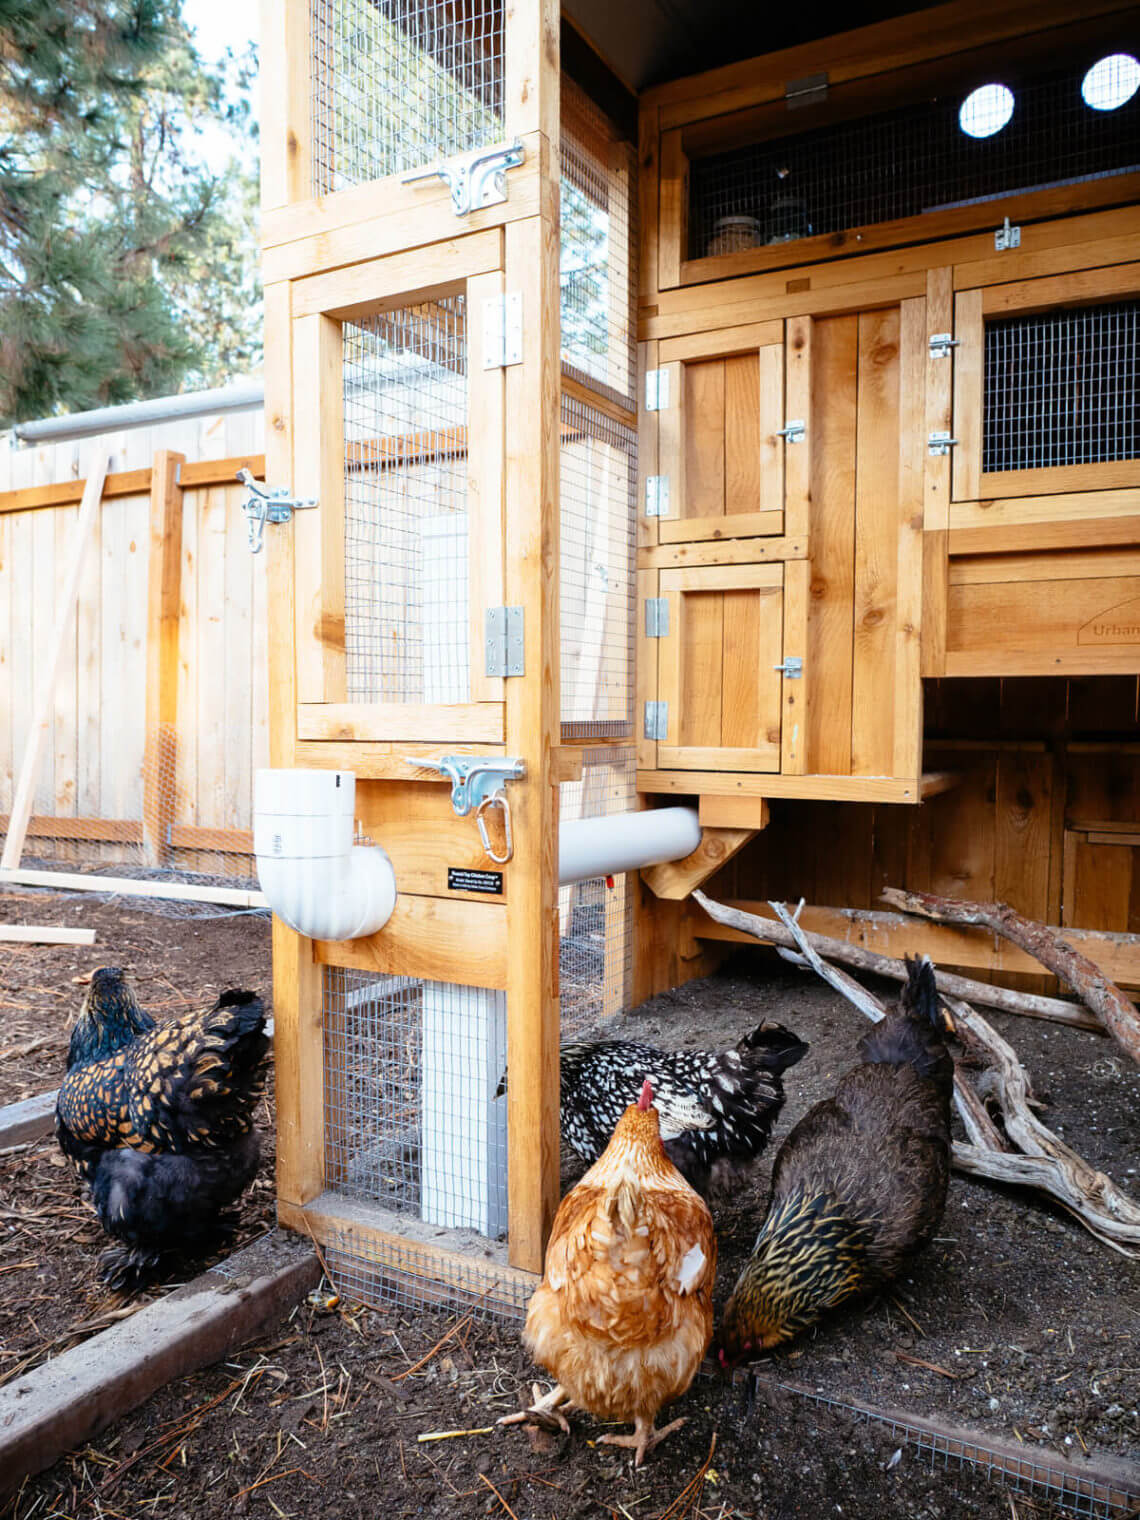 Security for Chicken Coops: Tips for Predator-Proofing and Protecting Your Backyard Flock